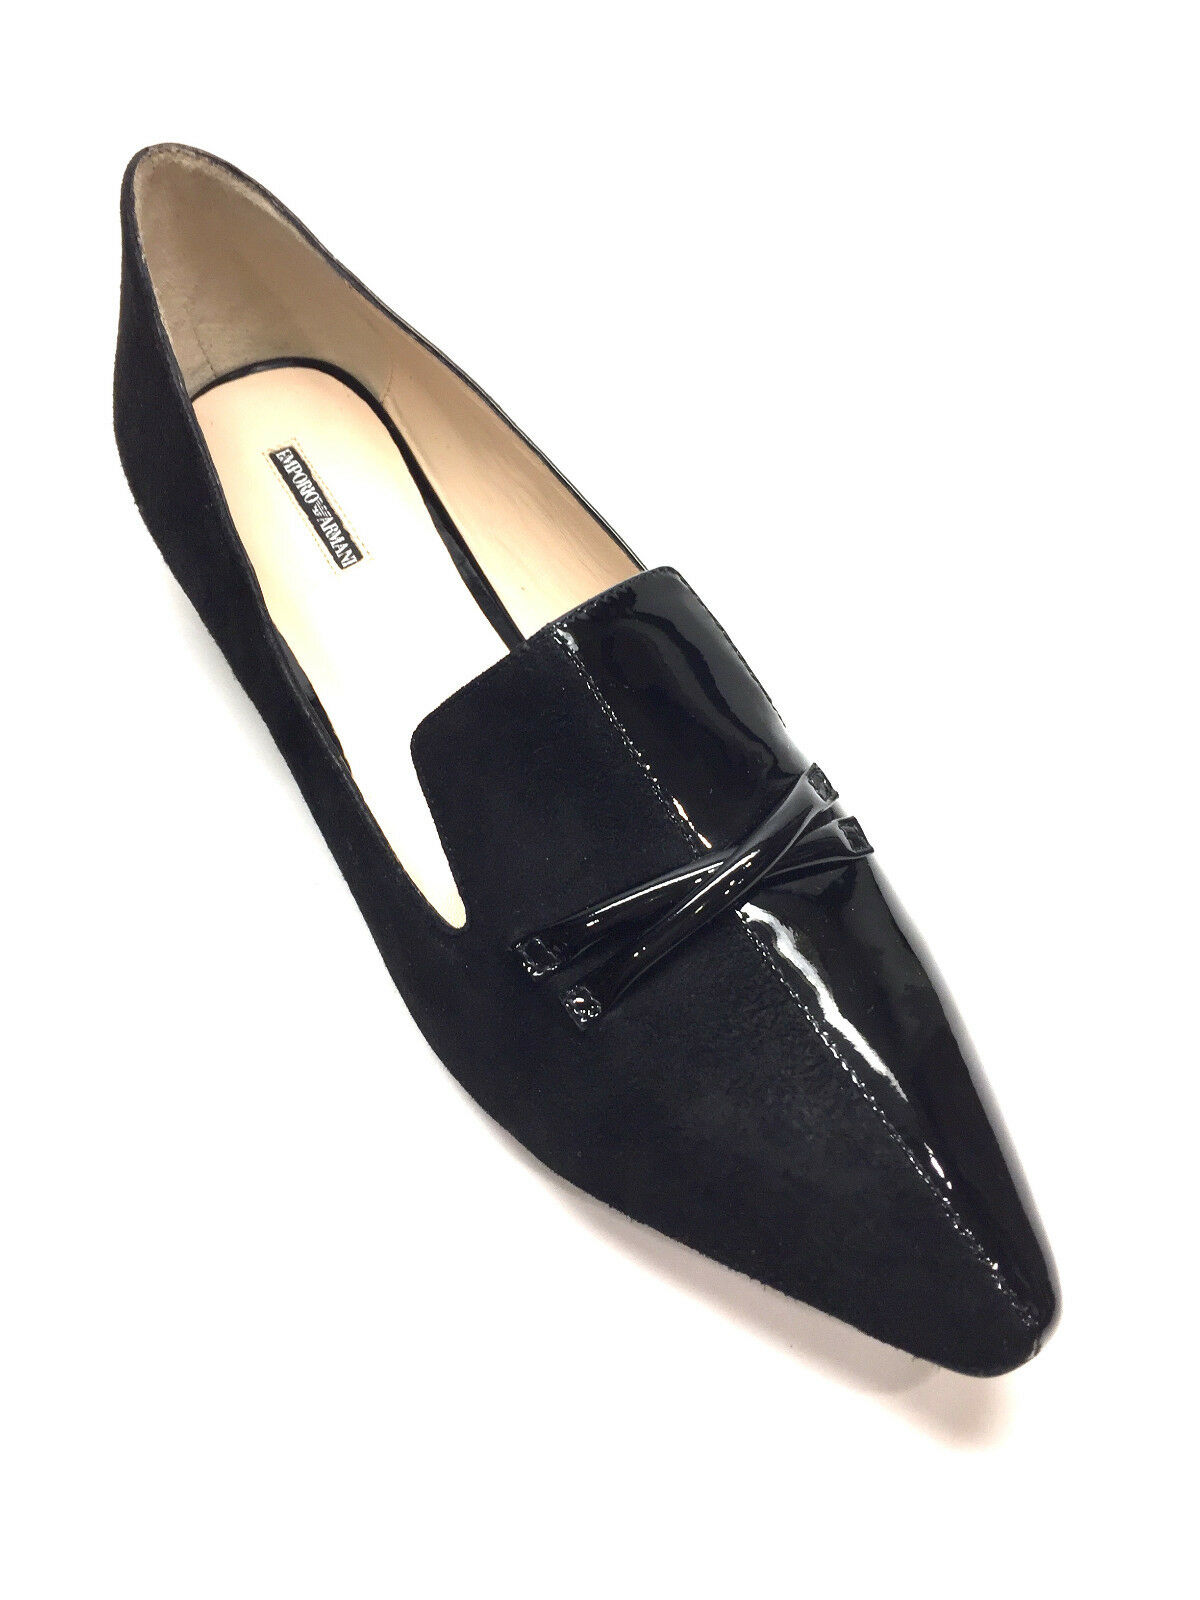 New EMPORIO ARMANI Nero Loafer Suede/Patent Leather Pointed-Toe Tuxedo Loafer Nero Flats 40 955274